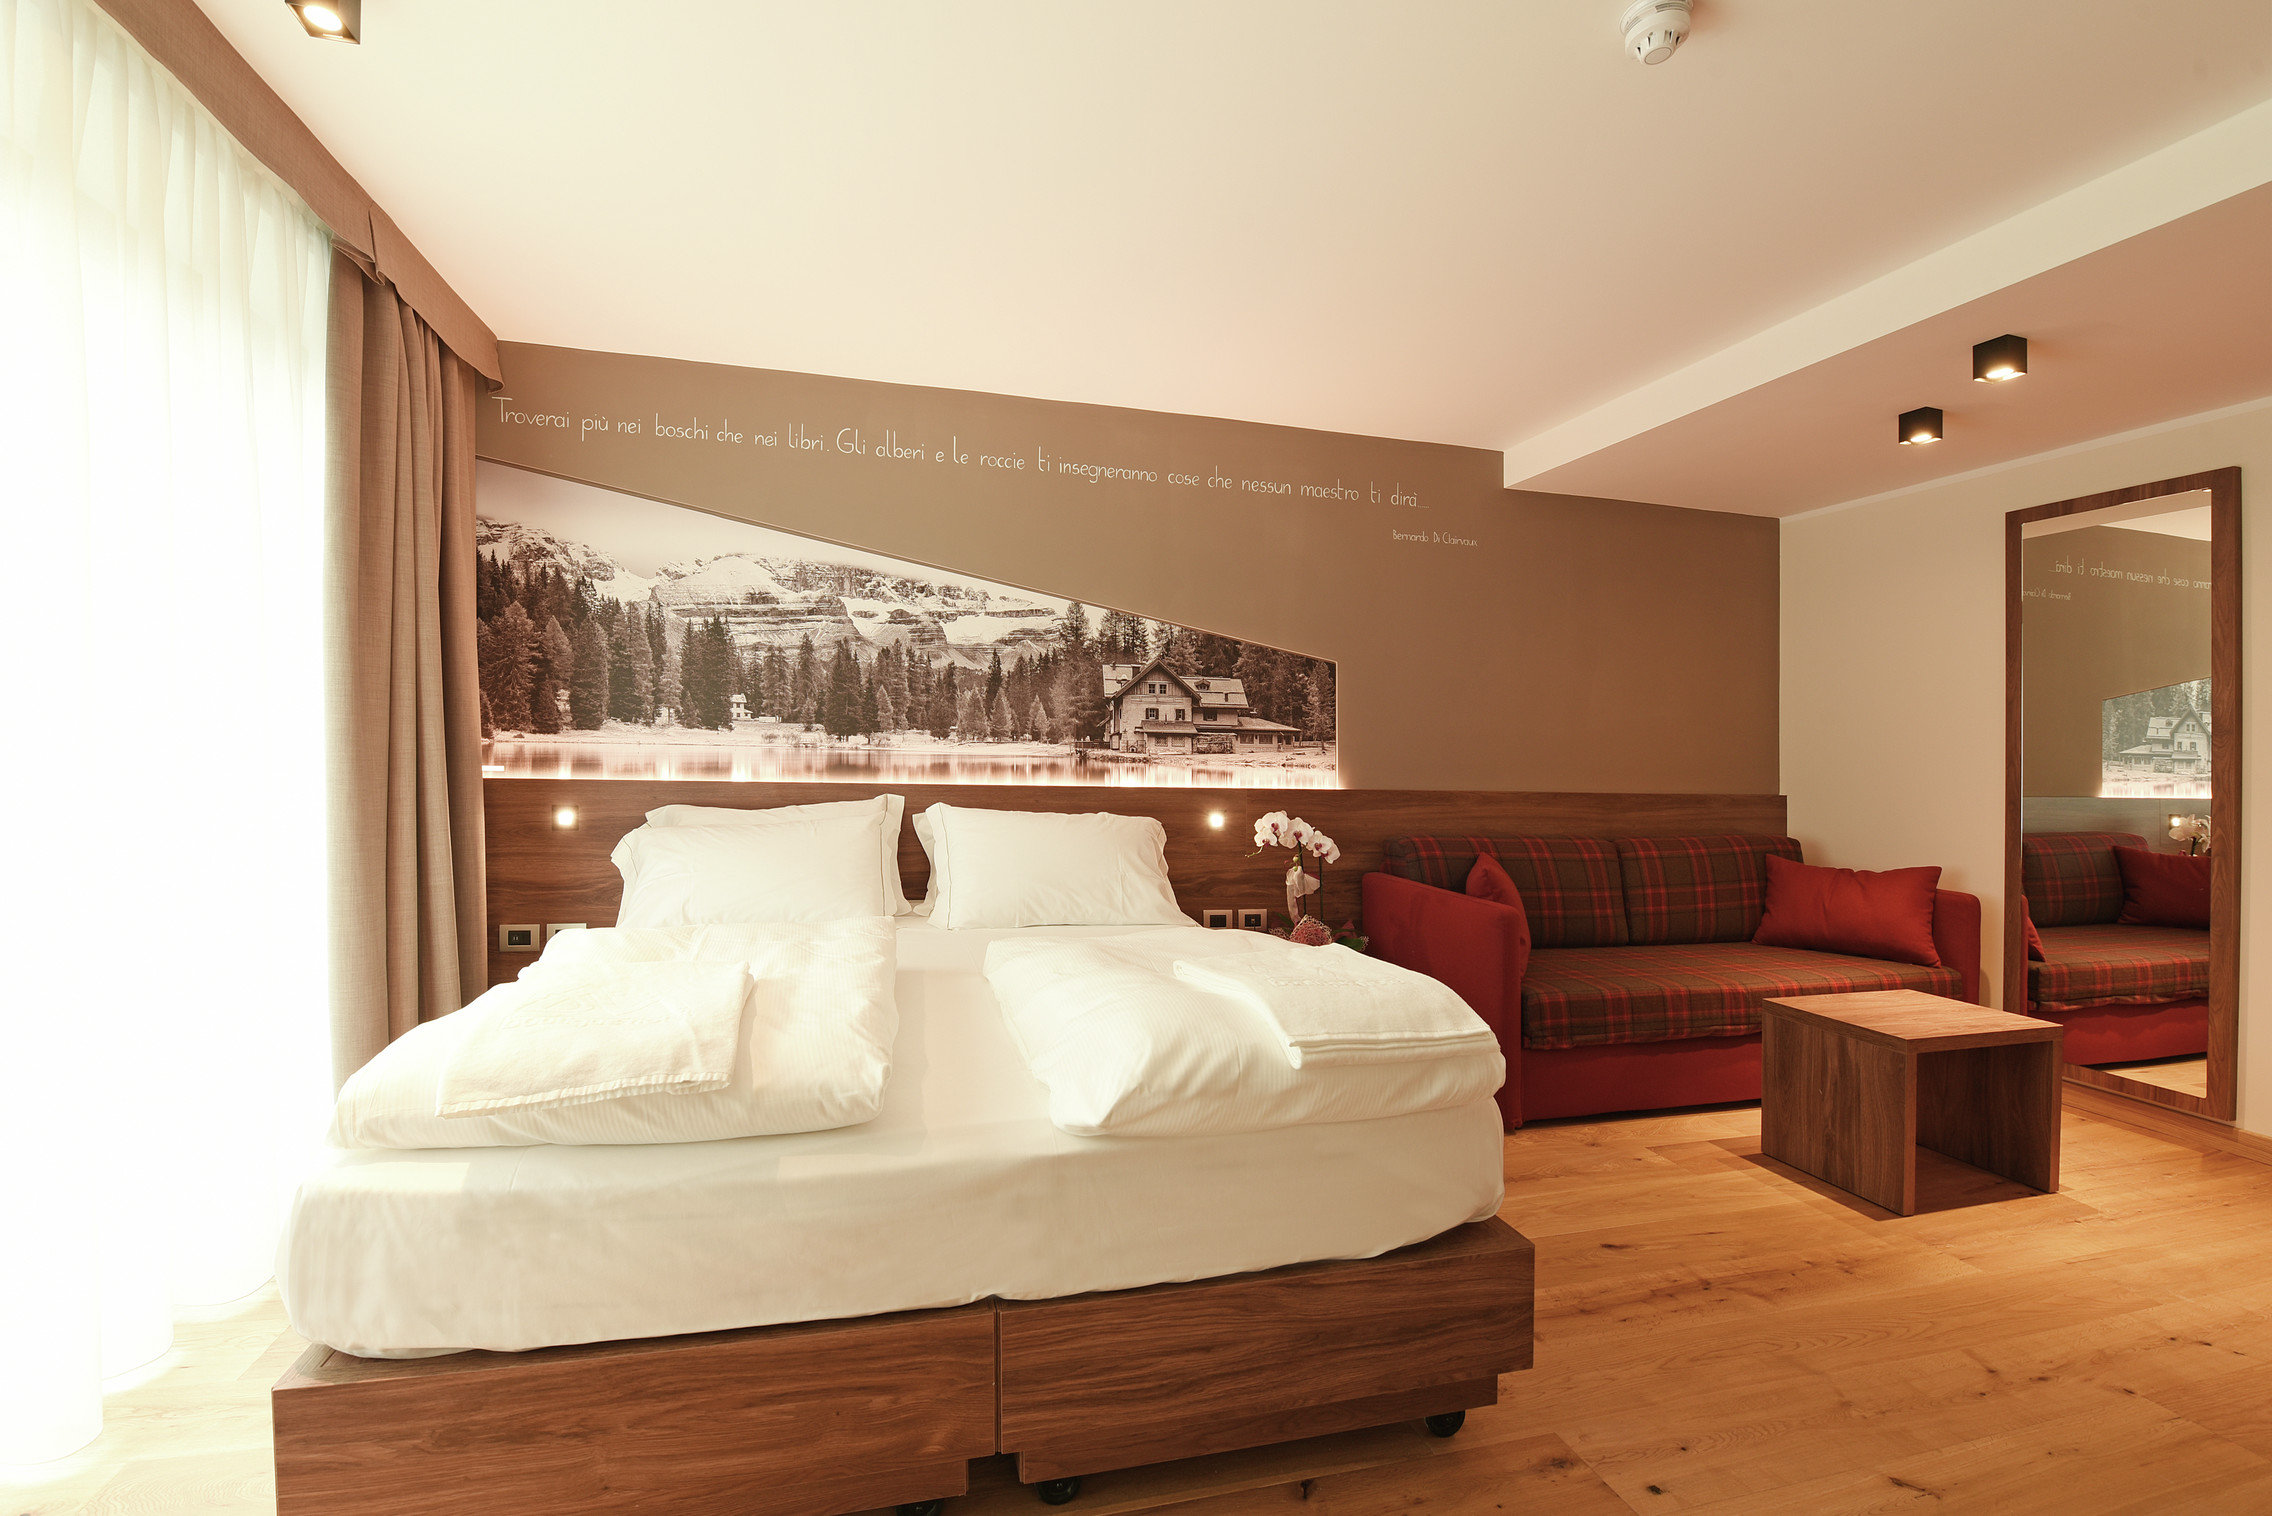 Trentino Booking - Dolomeet Boutique Hotel